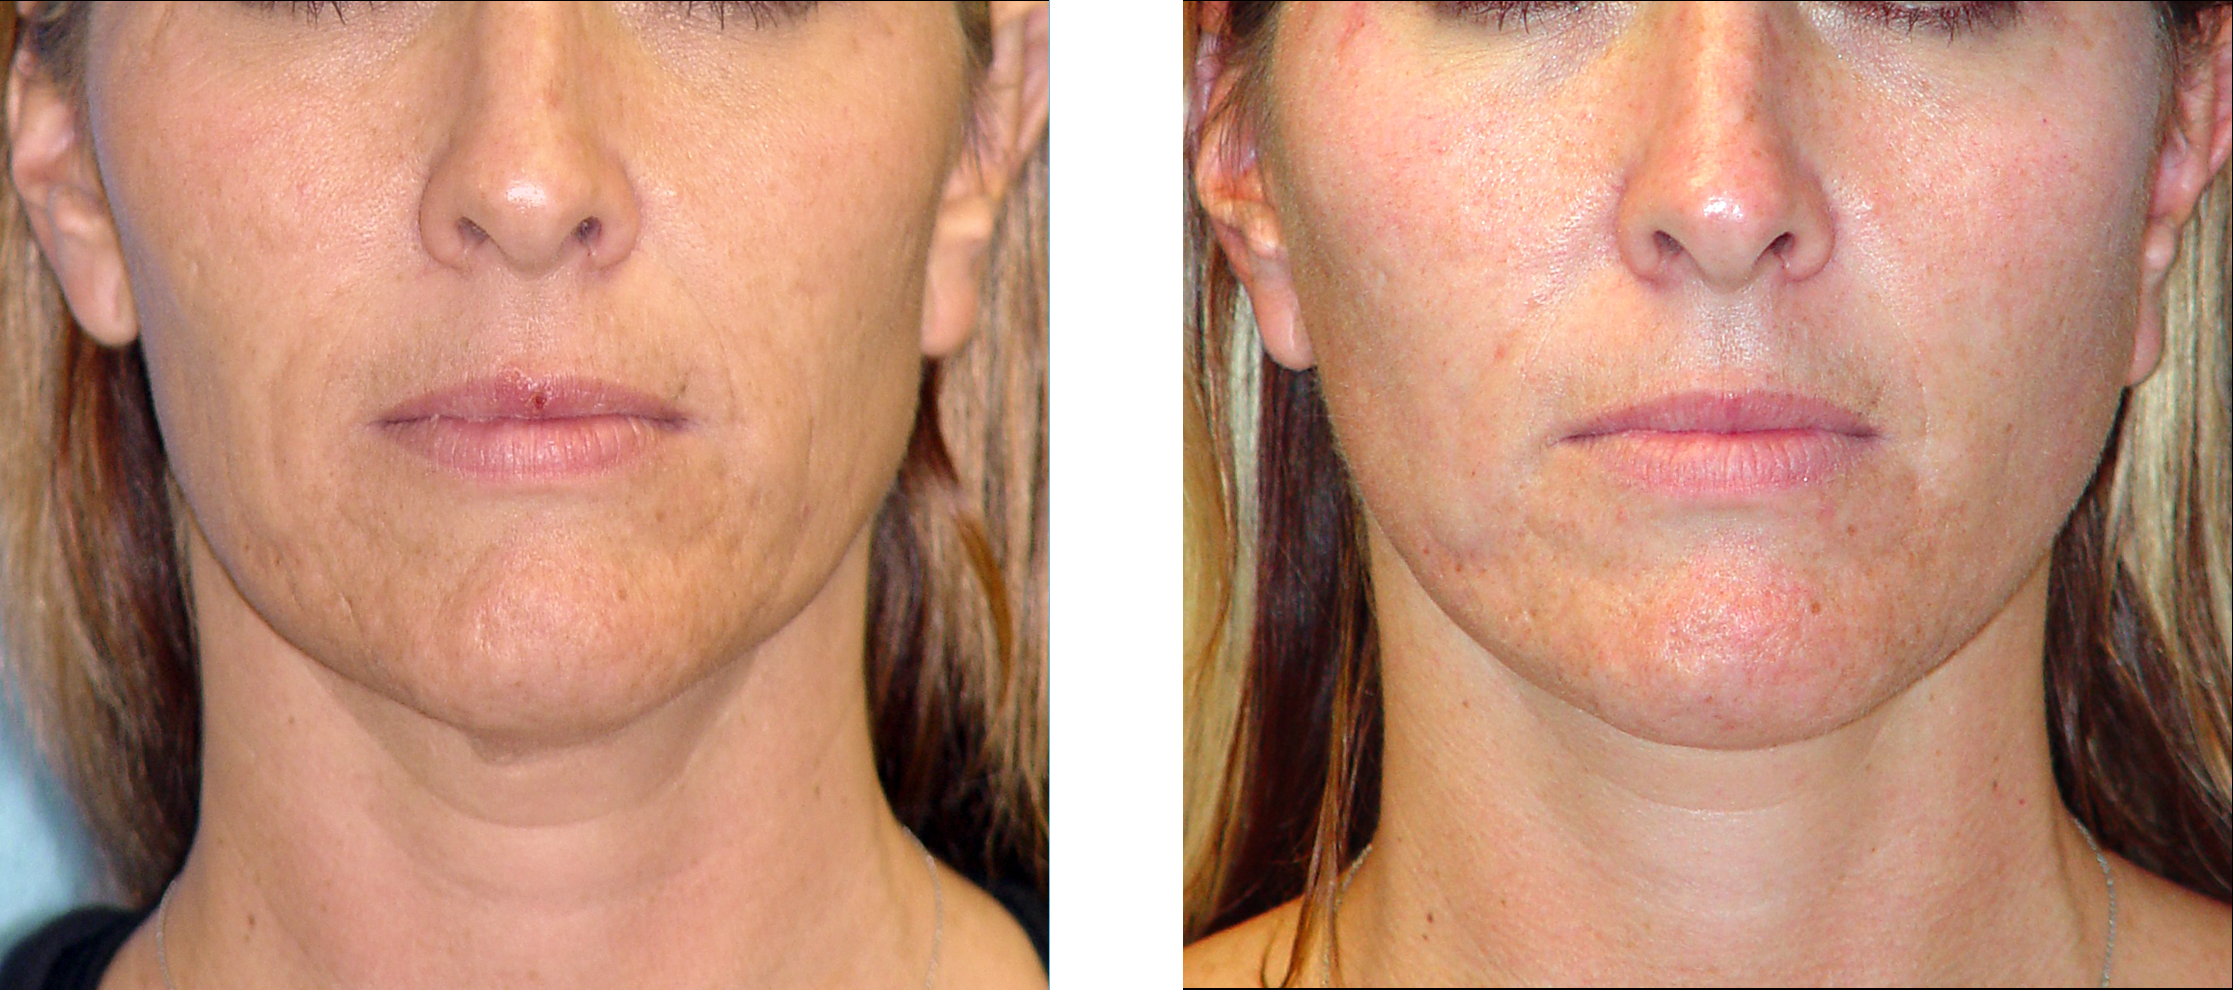 Are absolutely Facial resurfacing before and after